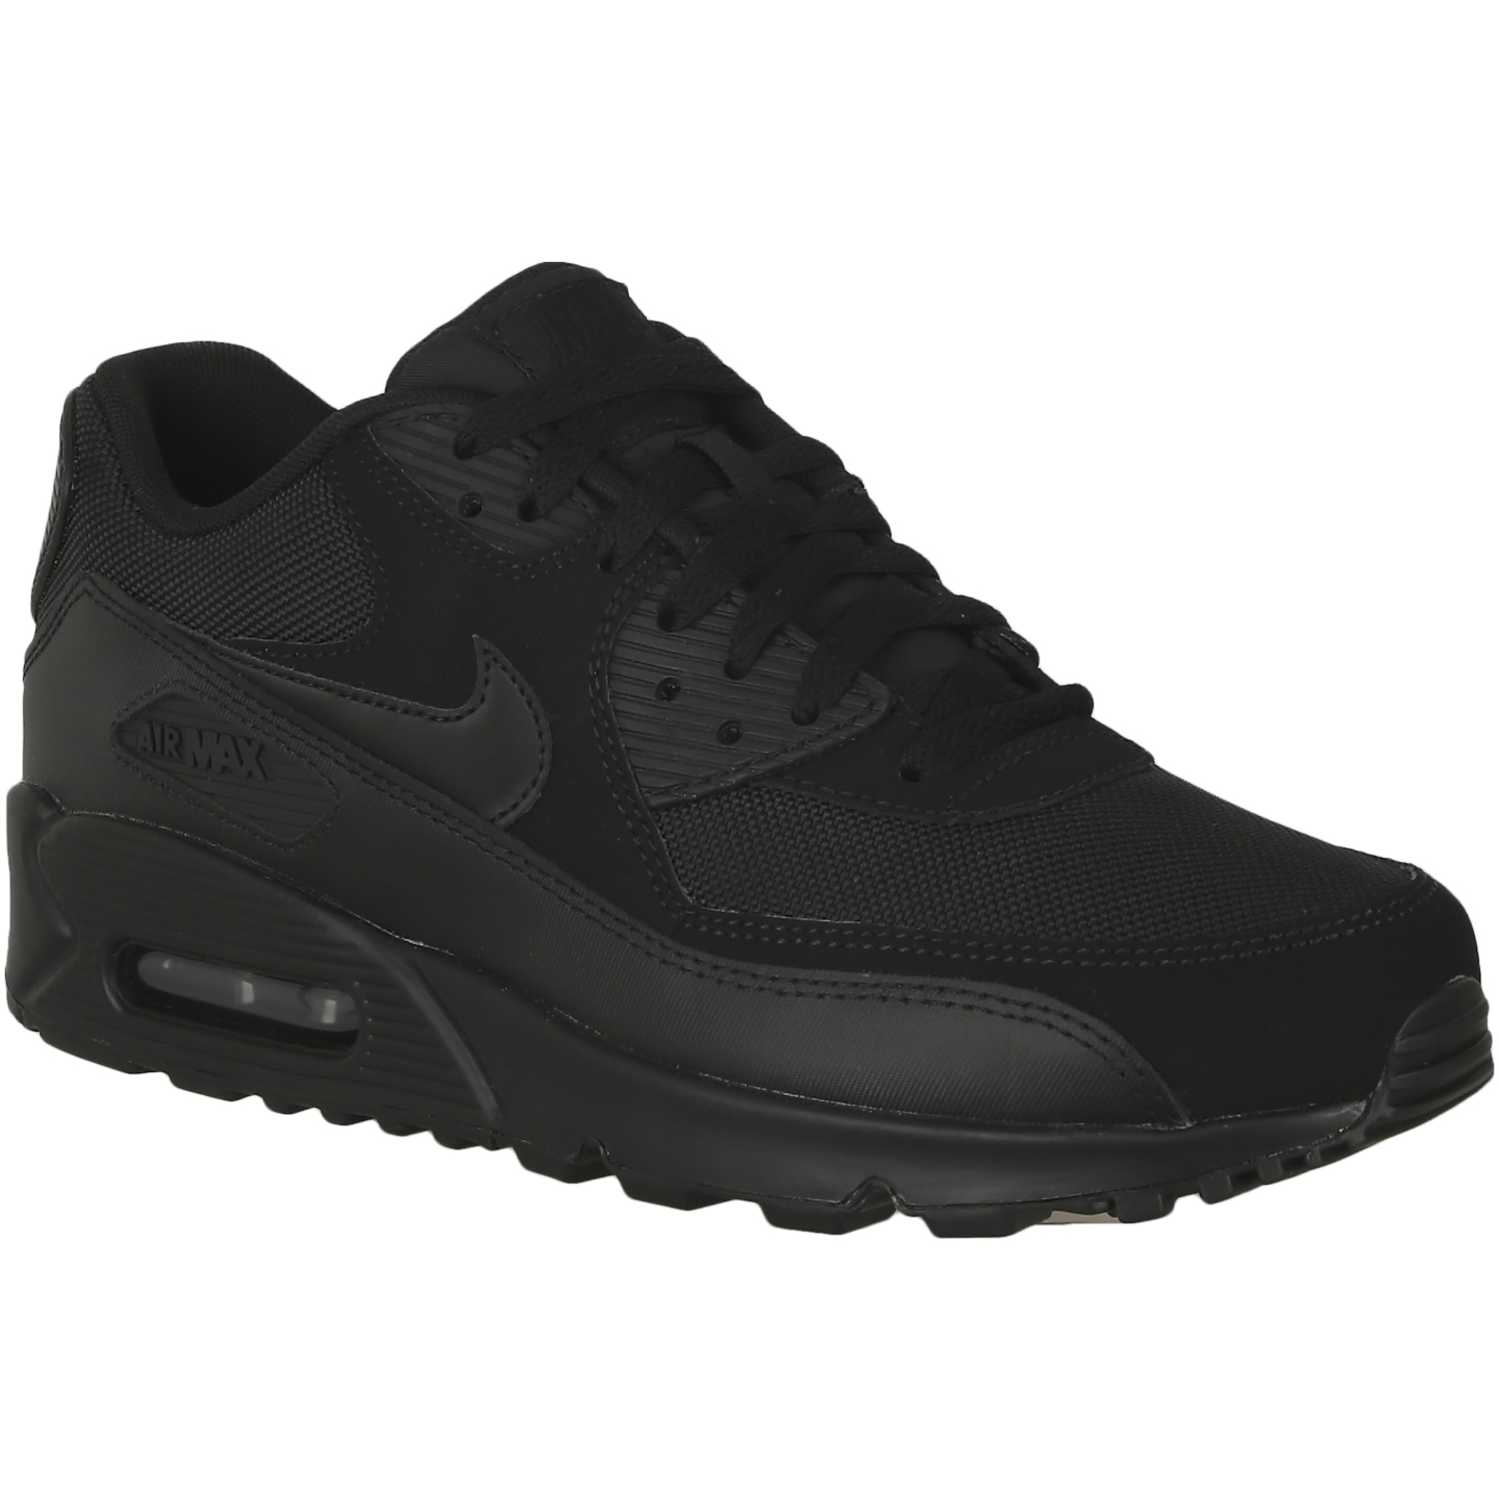 Zapatillas Nike Nightgaze Negro y Blanco